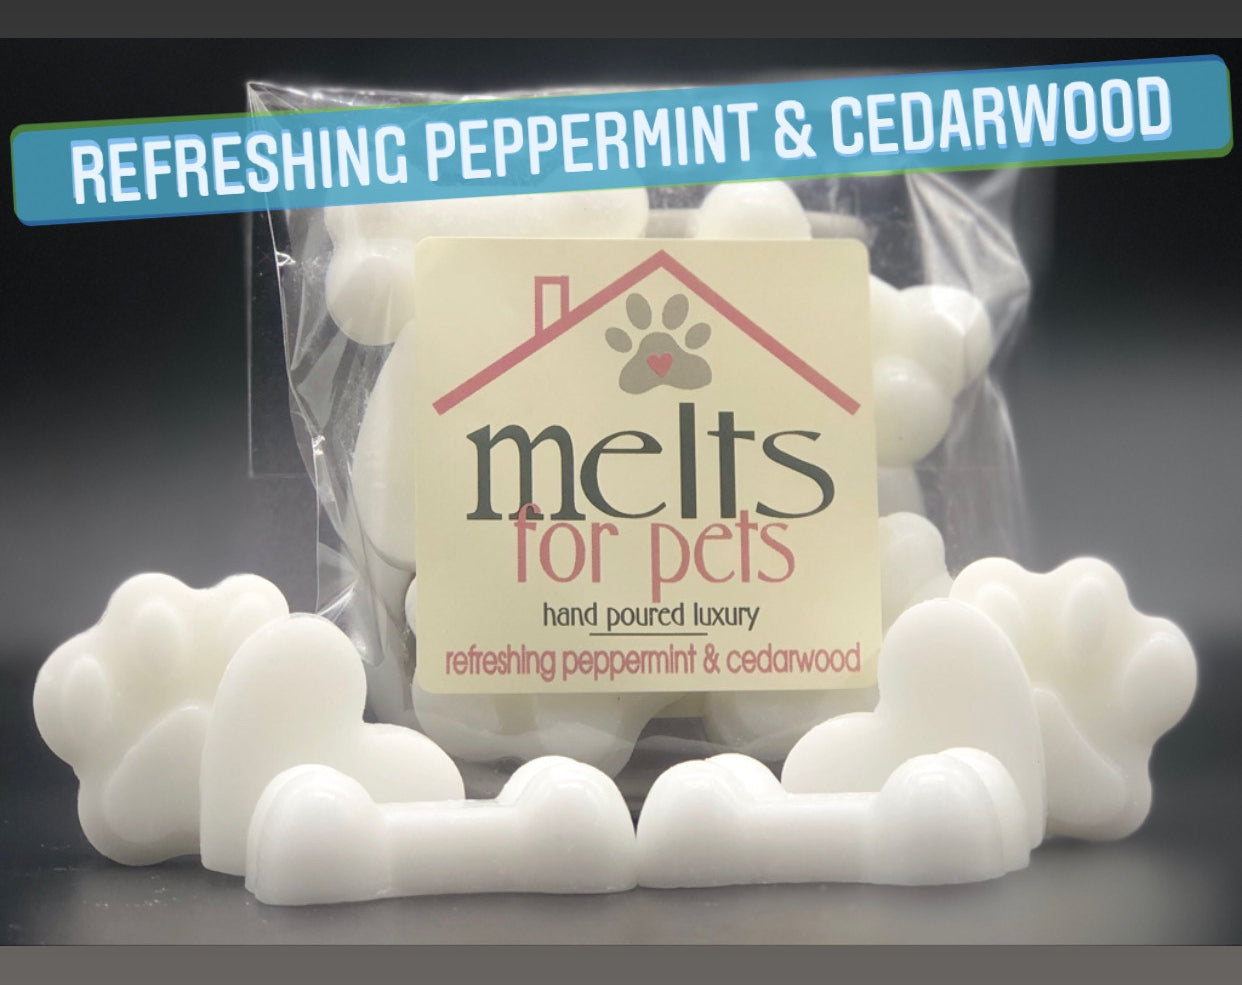 refreshing peppermint & cedarwood, luxury pet friendly wax melts - pack of 6!